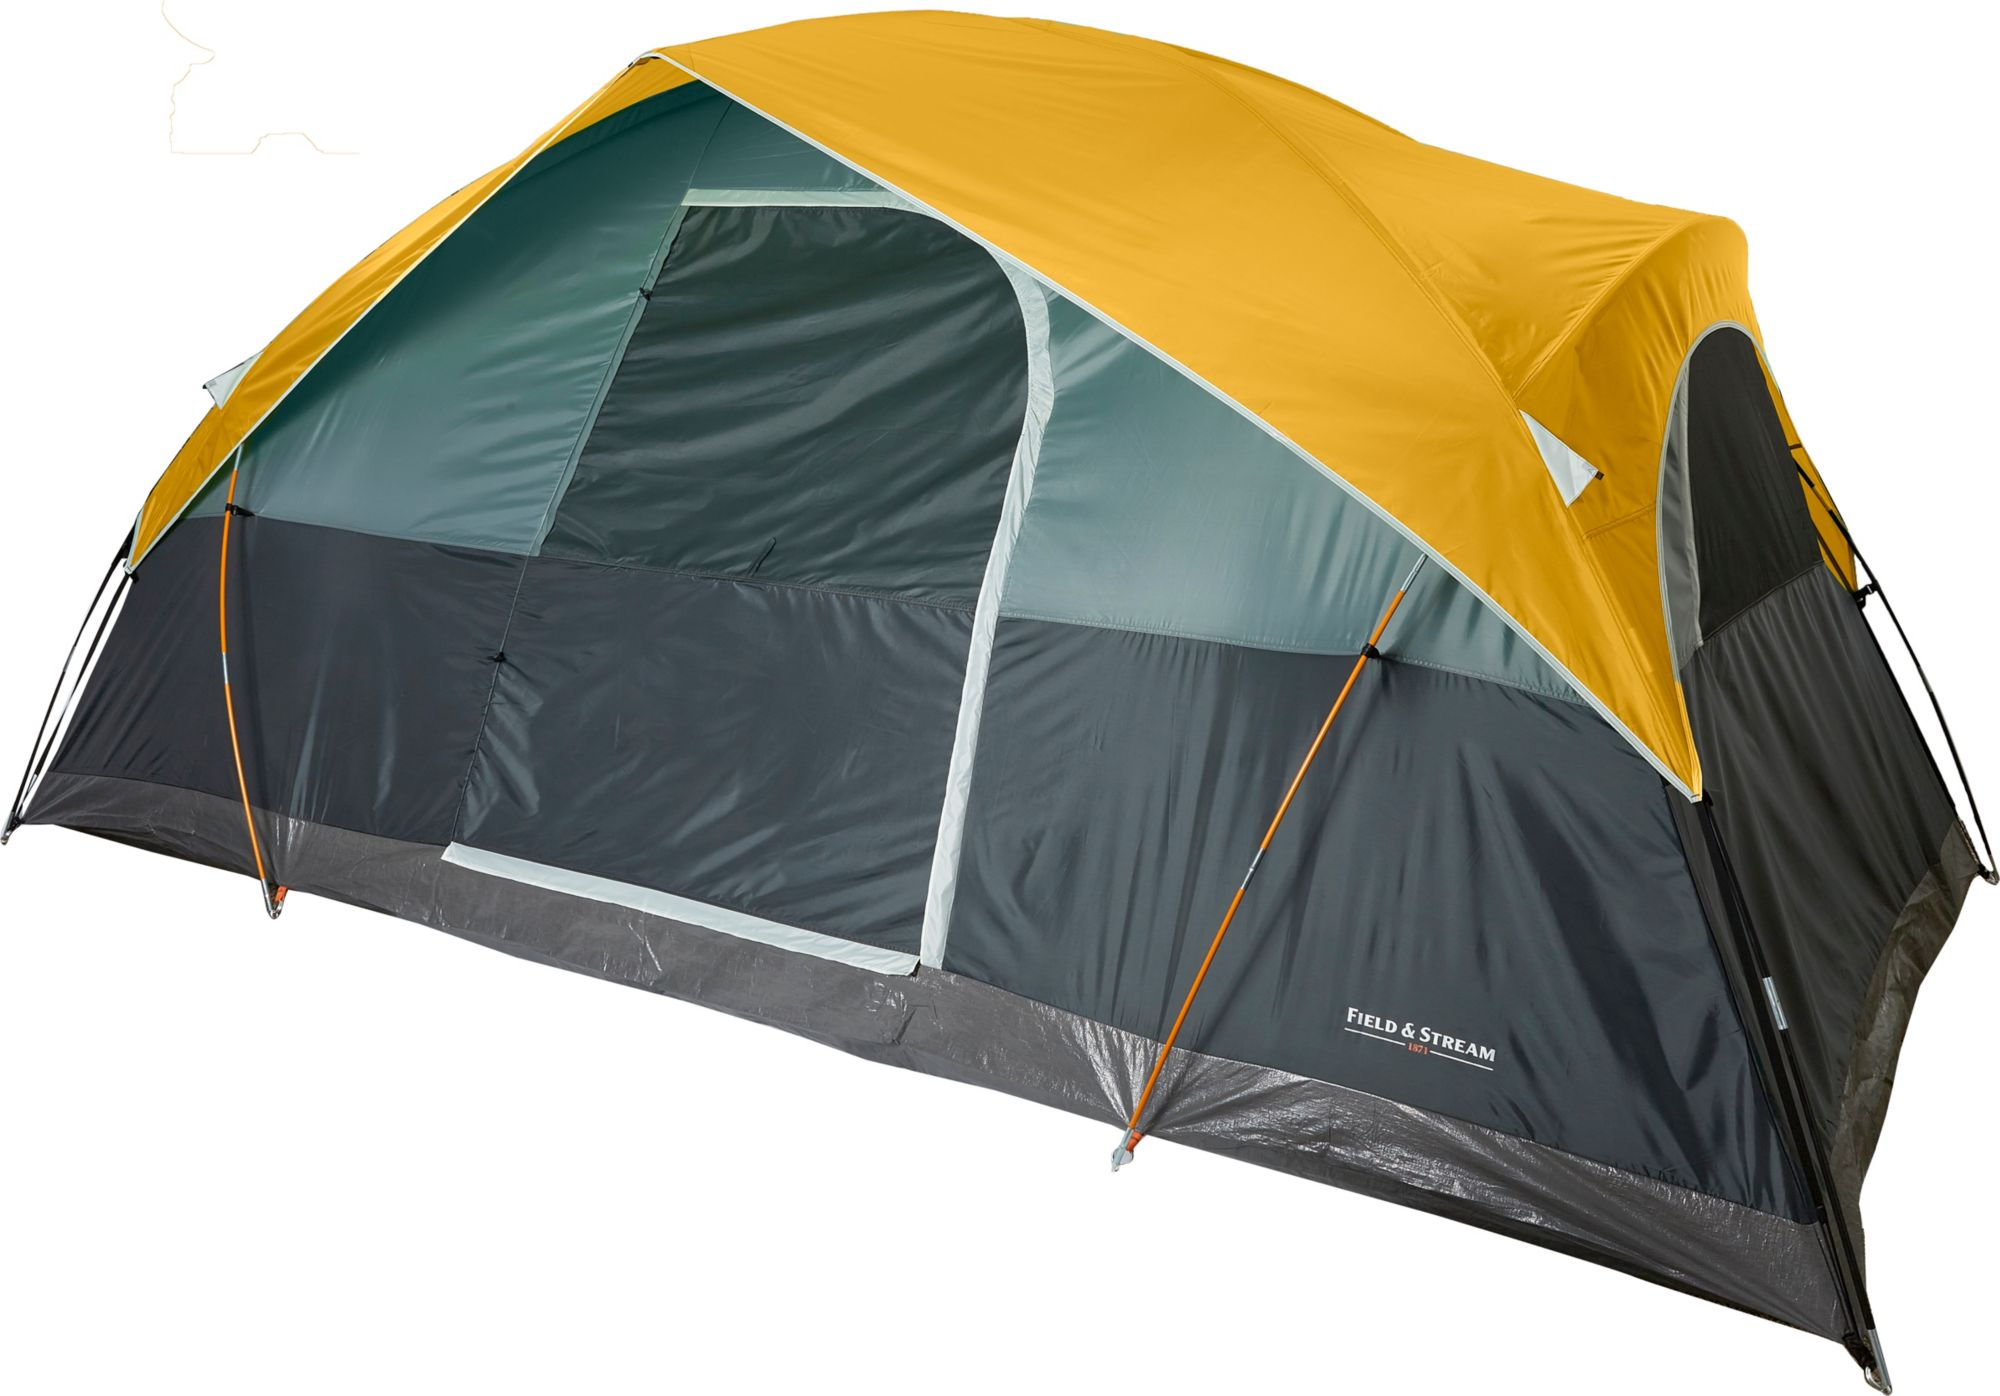 noImageFound ???  sc 1 st  DICKu0027S Sporting Goods & Field u0026 Stream 8 Person Recreational Dome Tent | DICKu0027S Sporting Goods